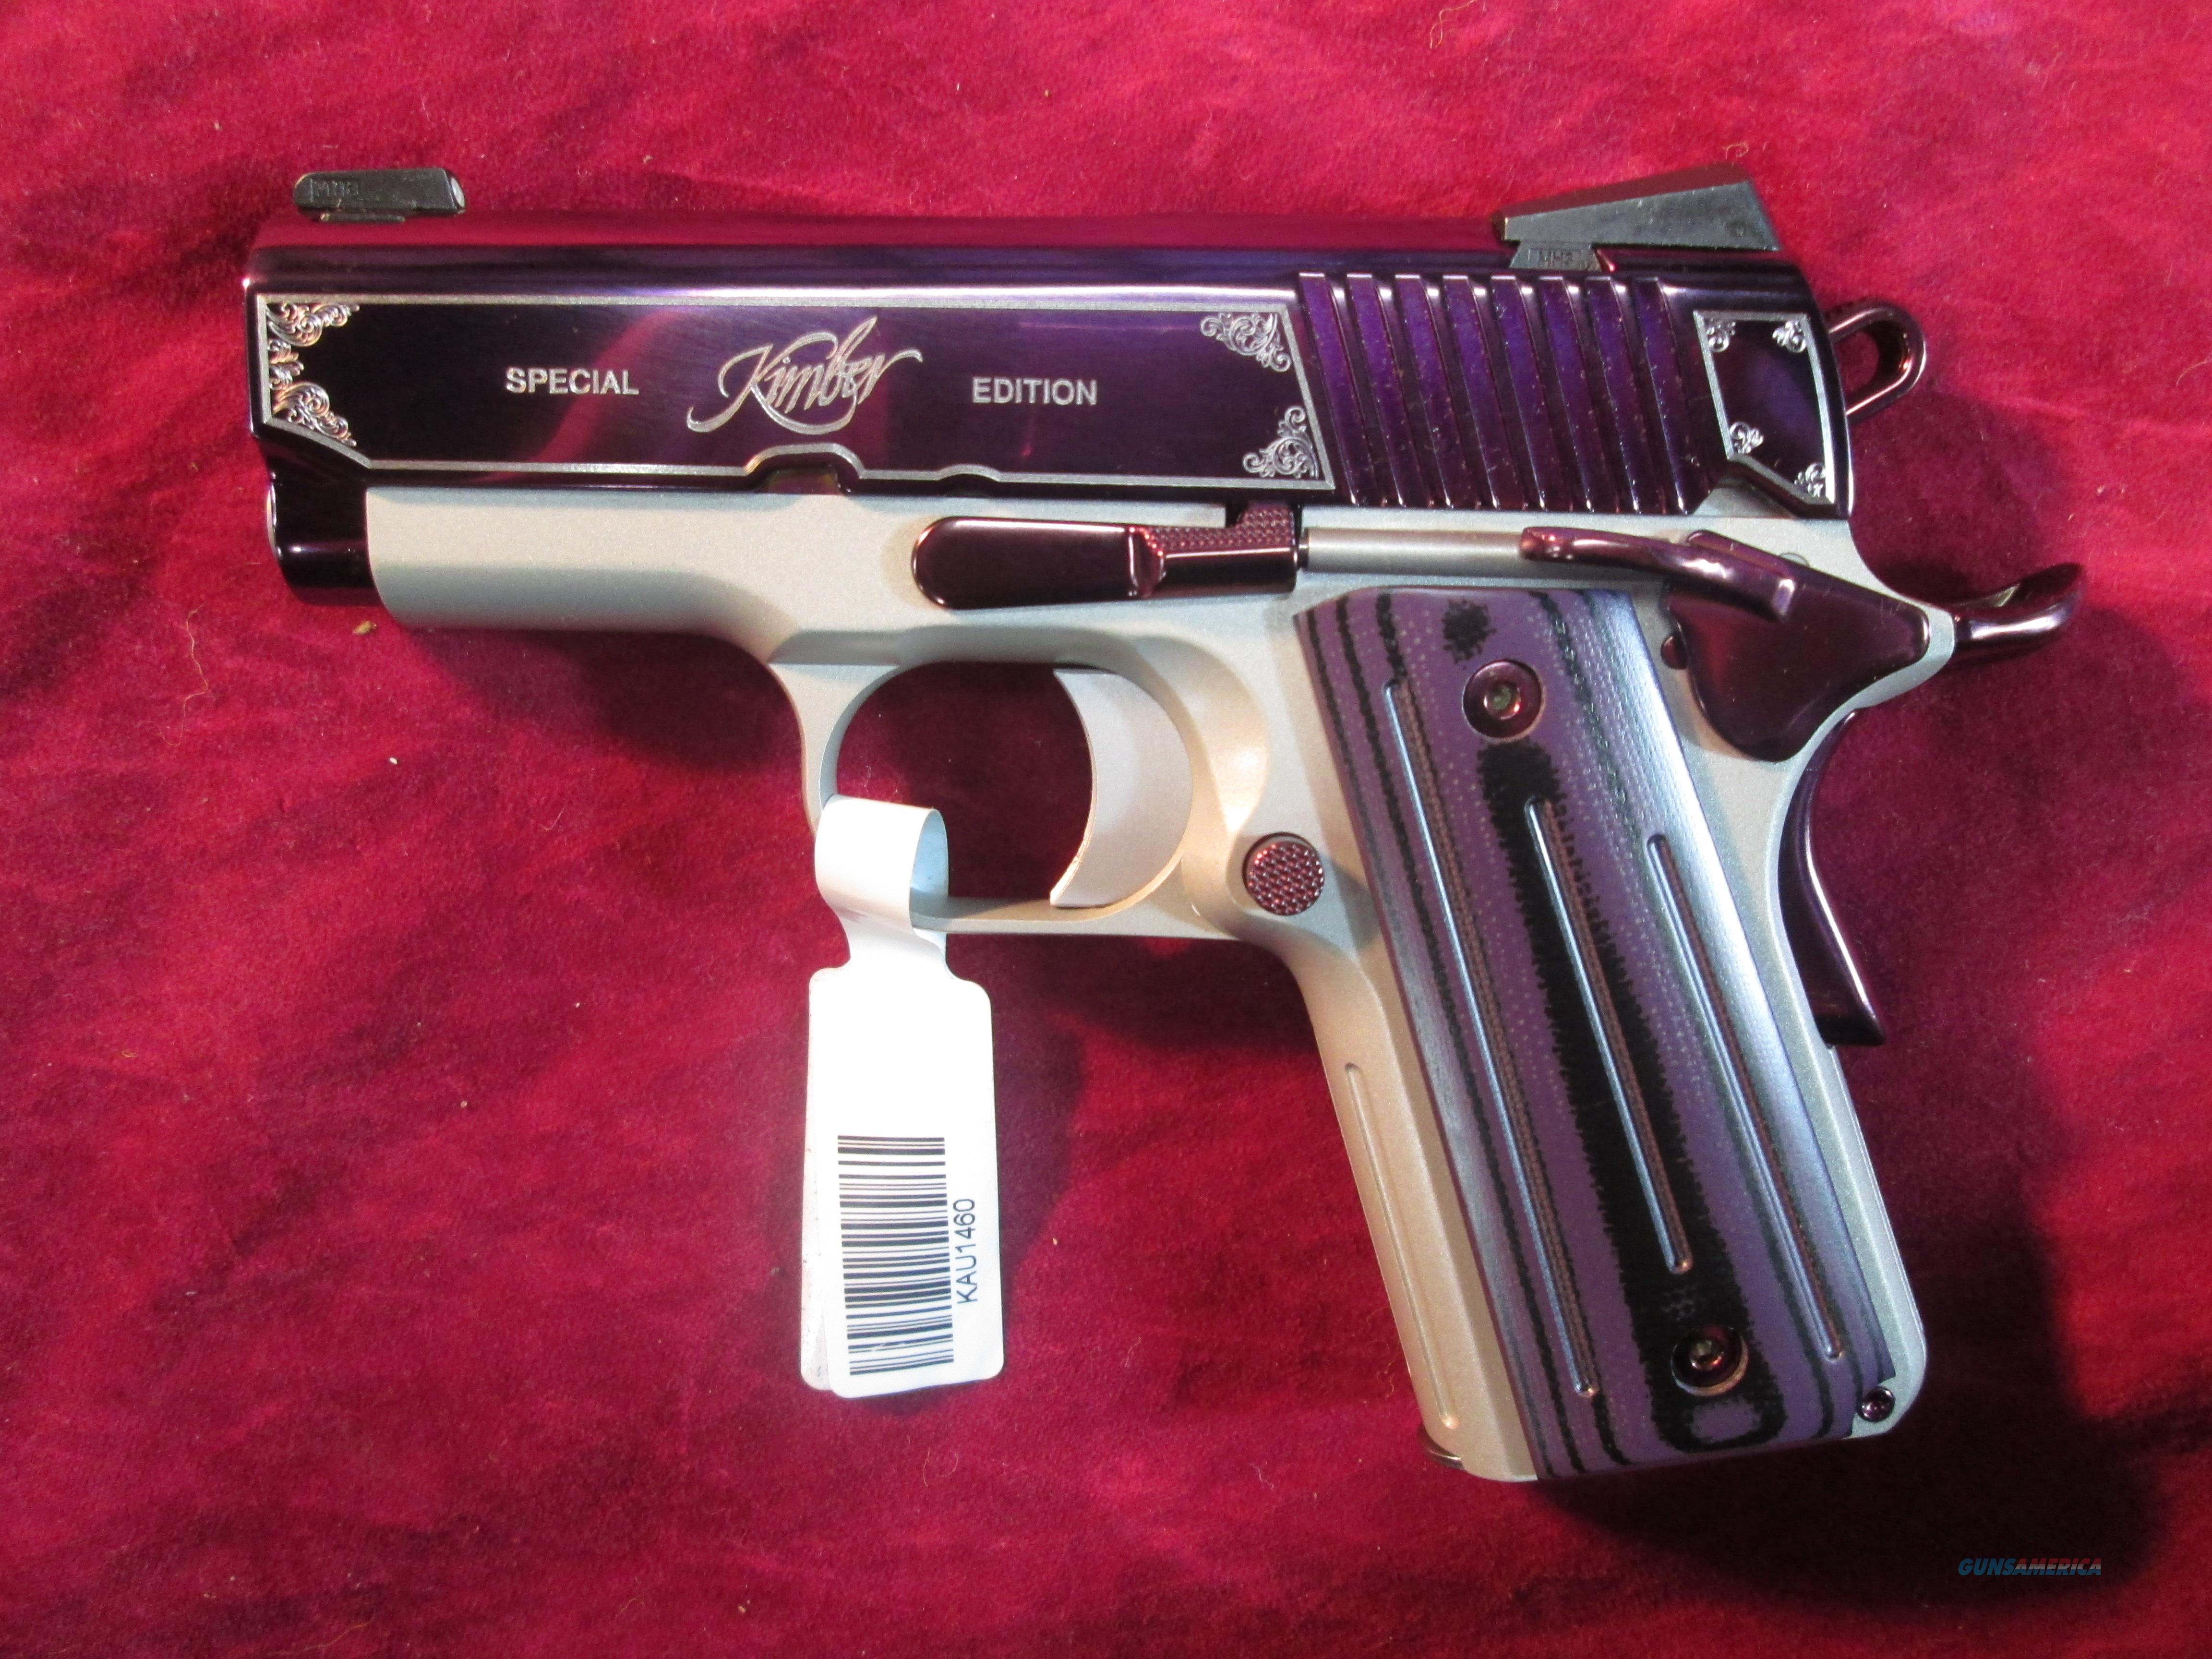 Kimber 9mm special edition